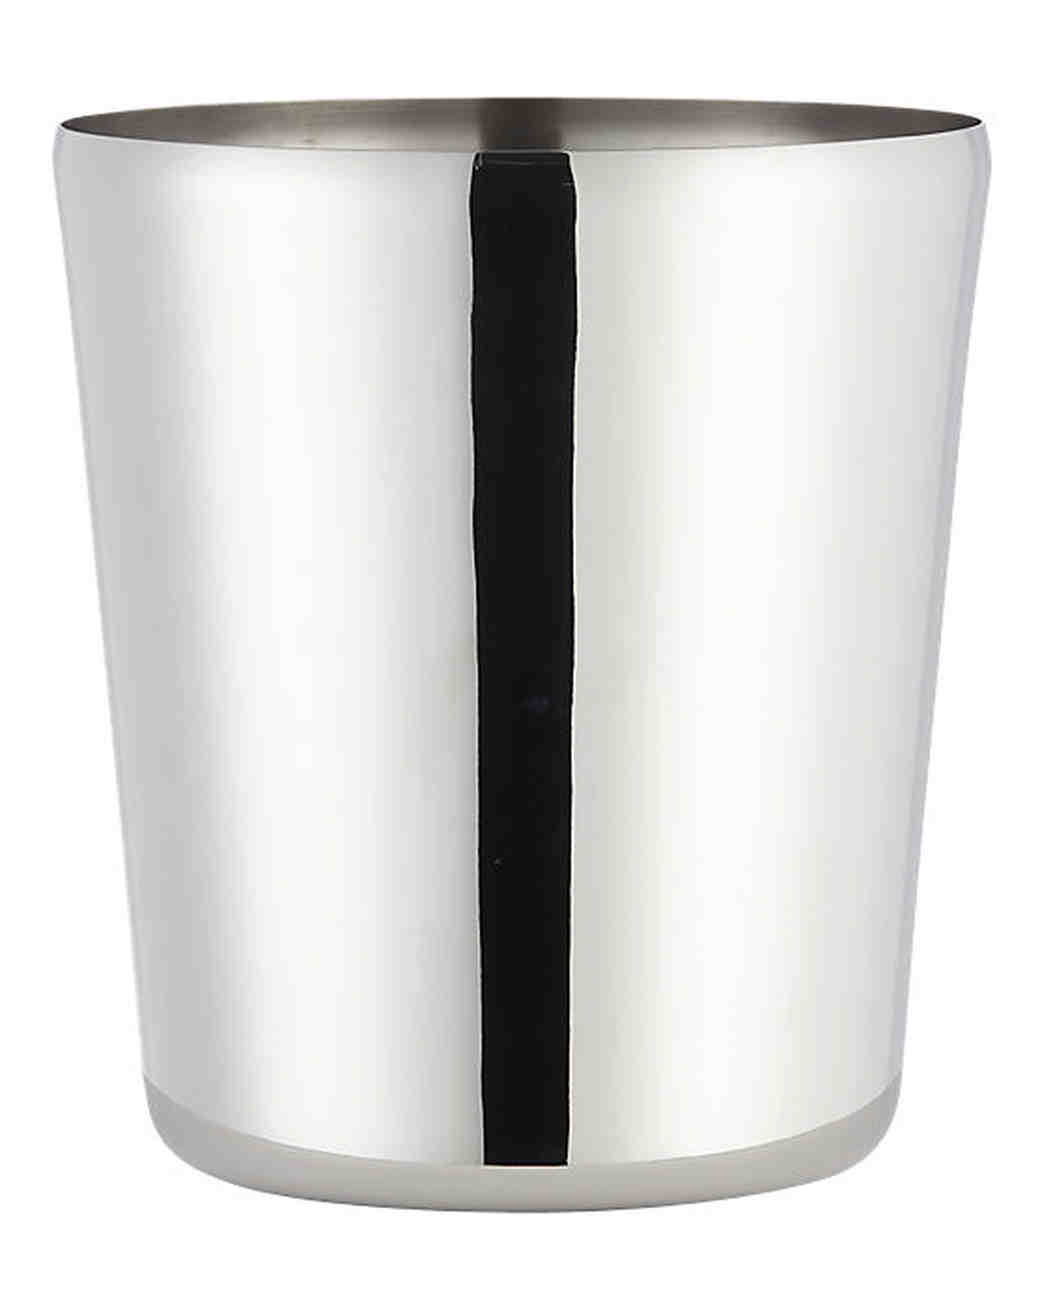 cb2 wine bucket